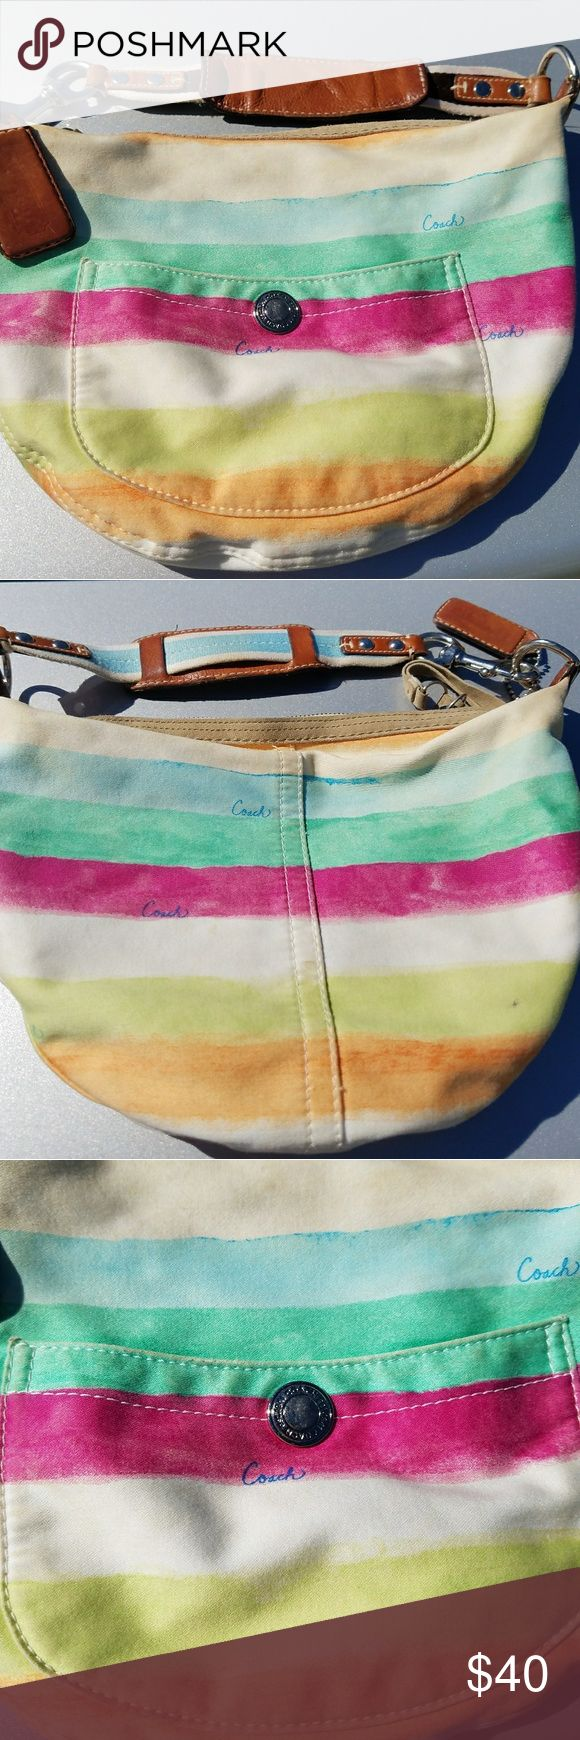 Authentic Coach Rainbow Stripe Hobo Shoulder Bag Authentic Coach Rainbow Stripe Hobo Shoulder Bag *Item Number: (M0673-10021) *Gently Used *Clean Inside Coach Bags Hobos